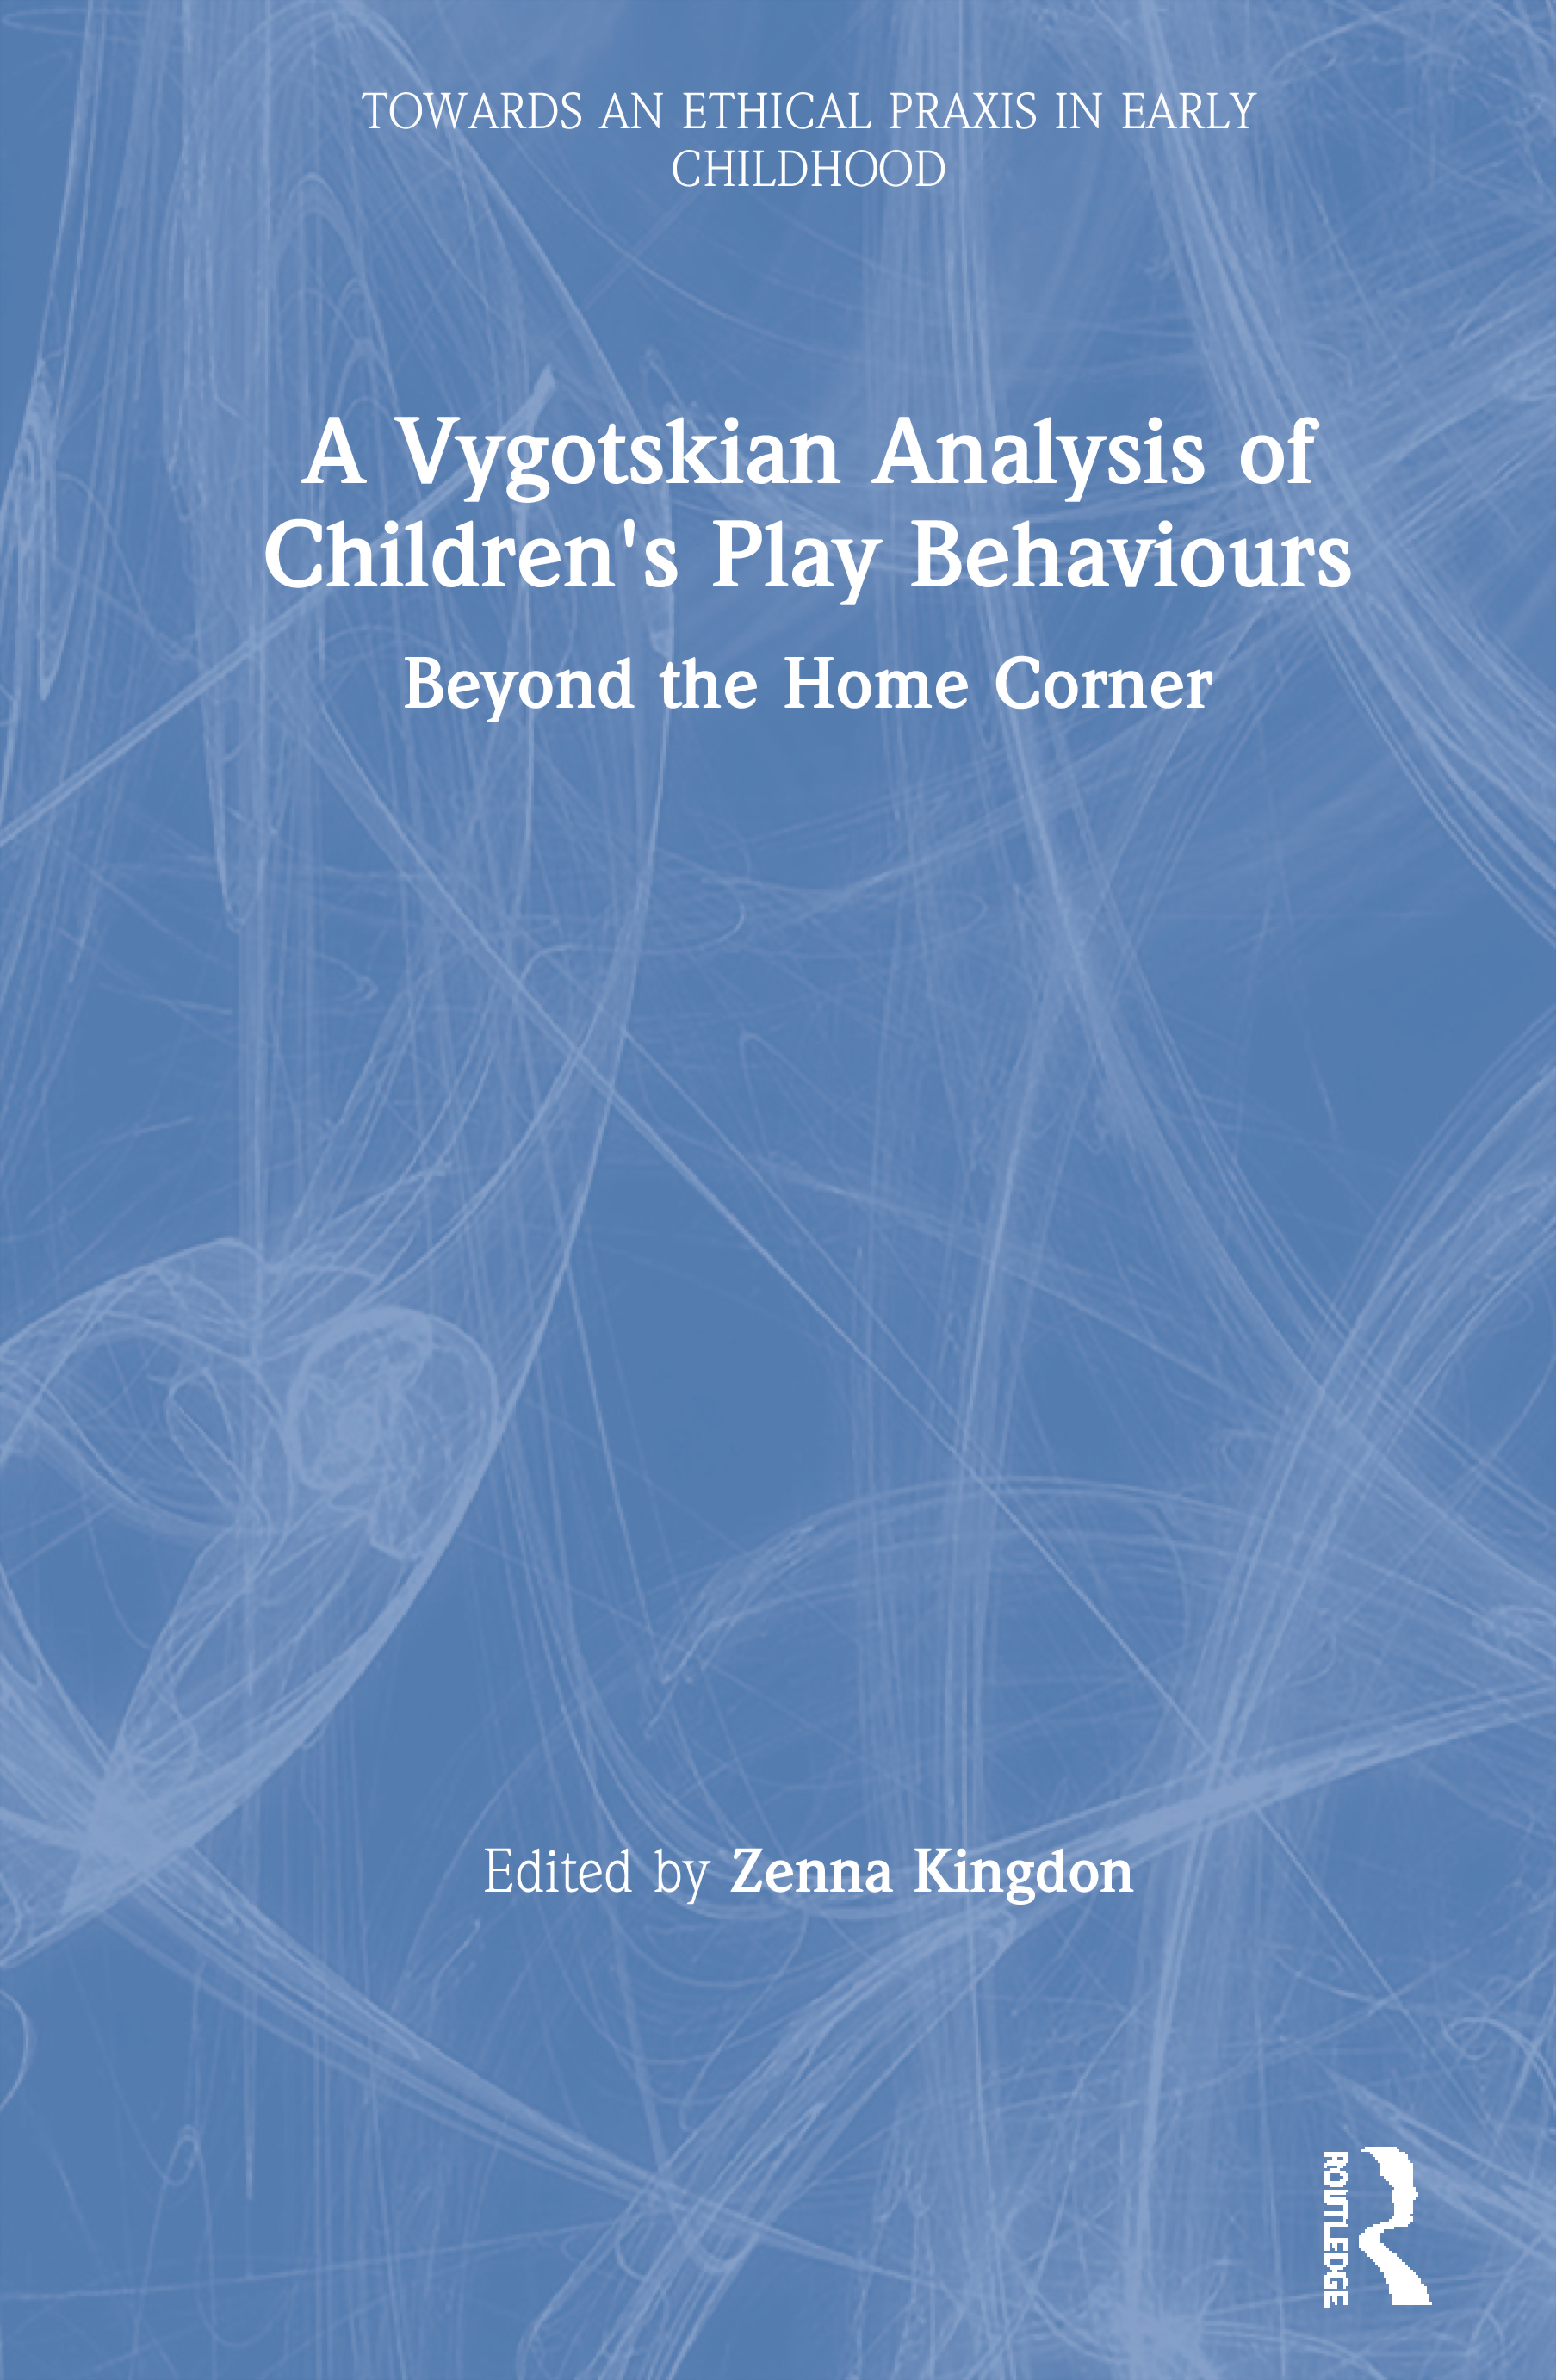 A Vygotskian Analysis of Children's Play Behaviours: Beyond the Home Corner book cover